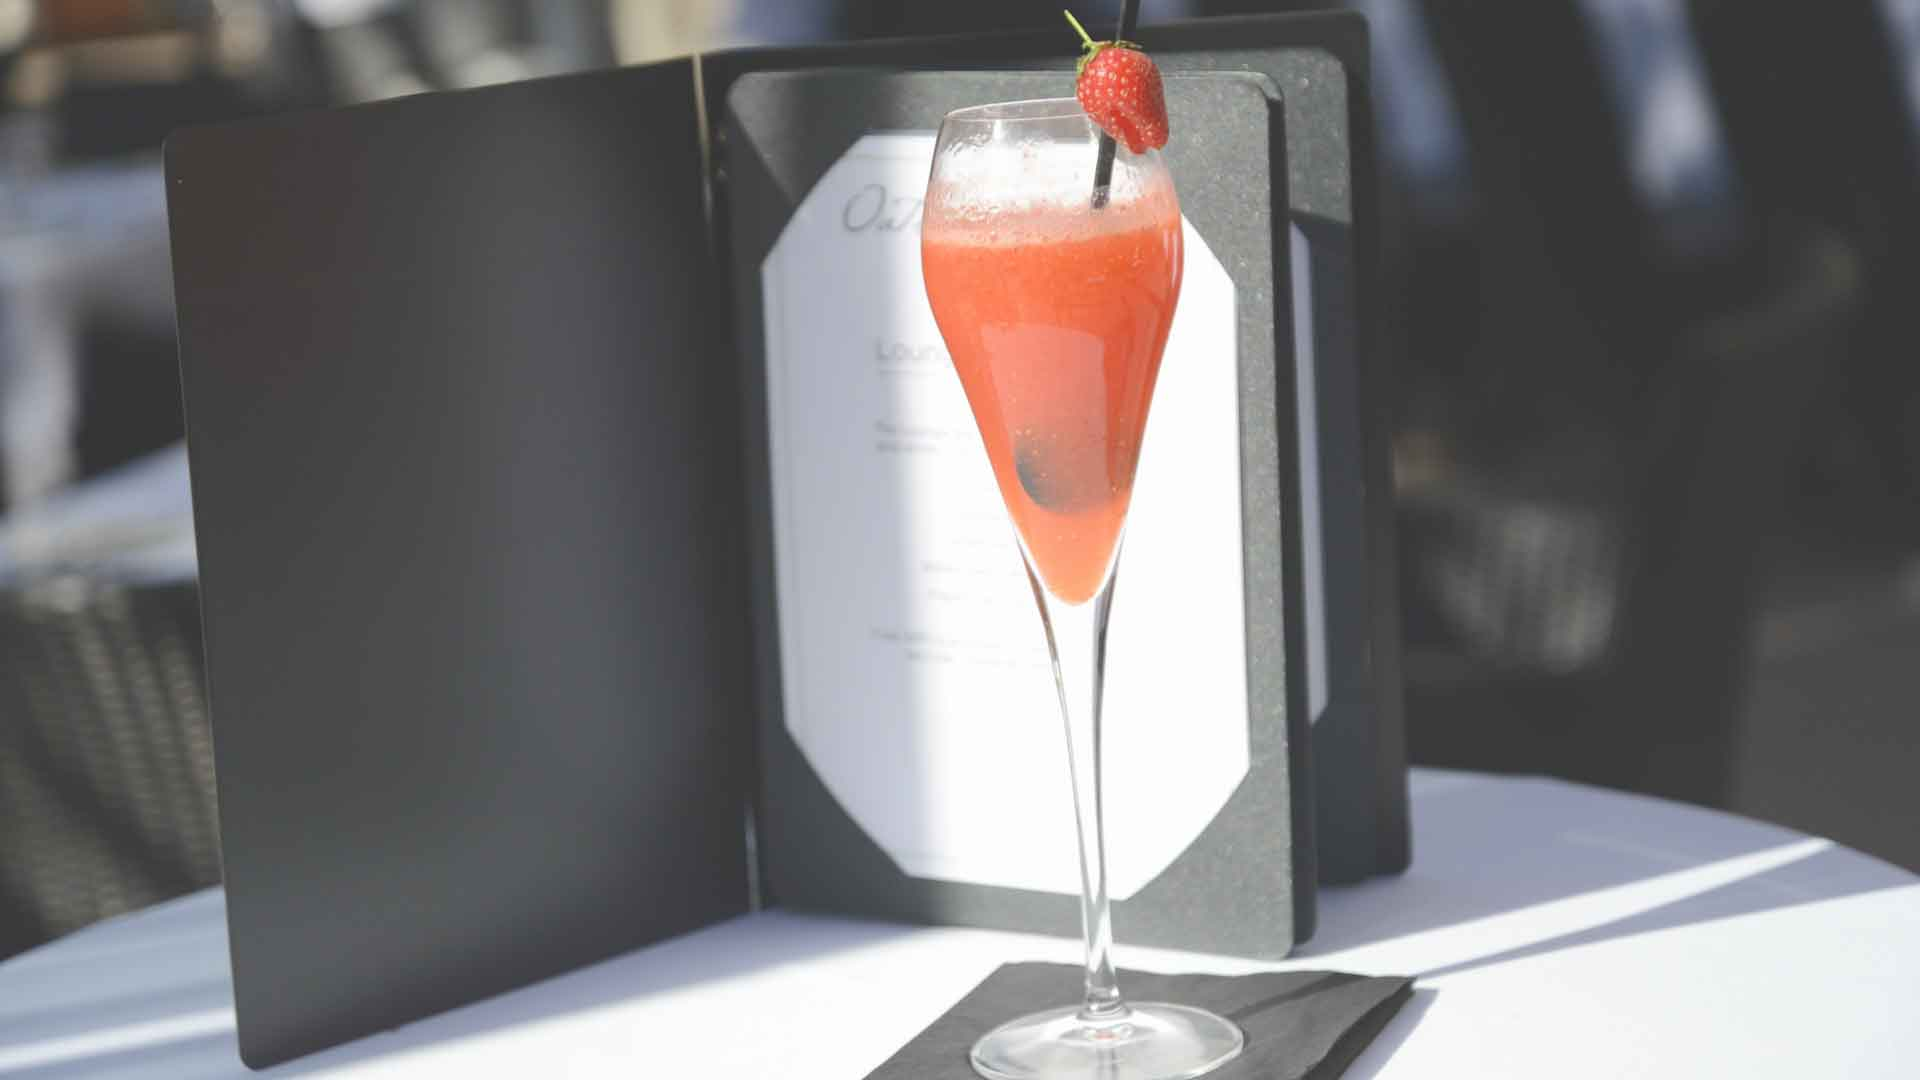 Our strawberry delight cocktail